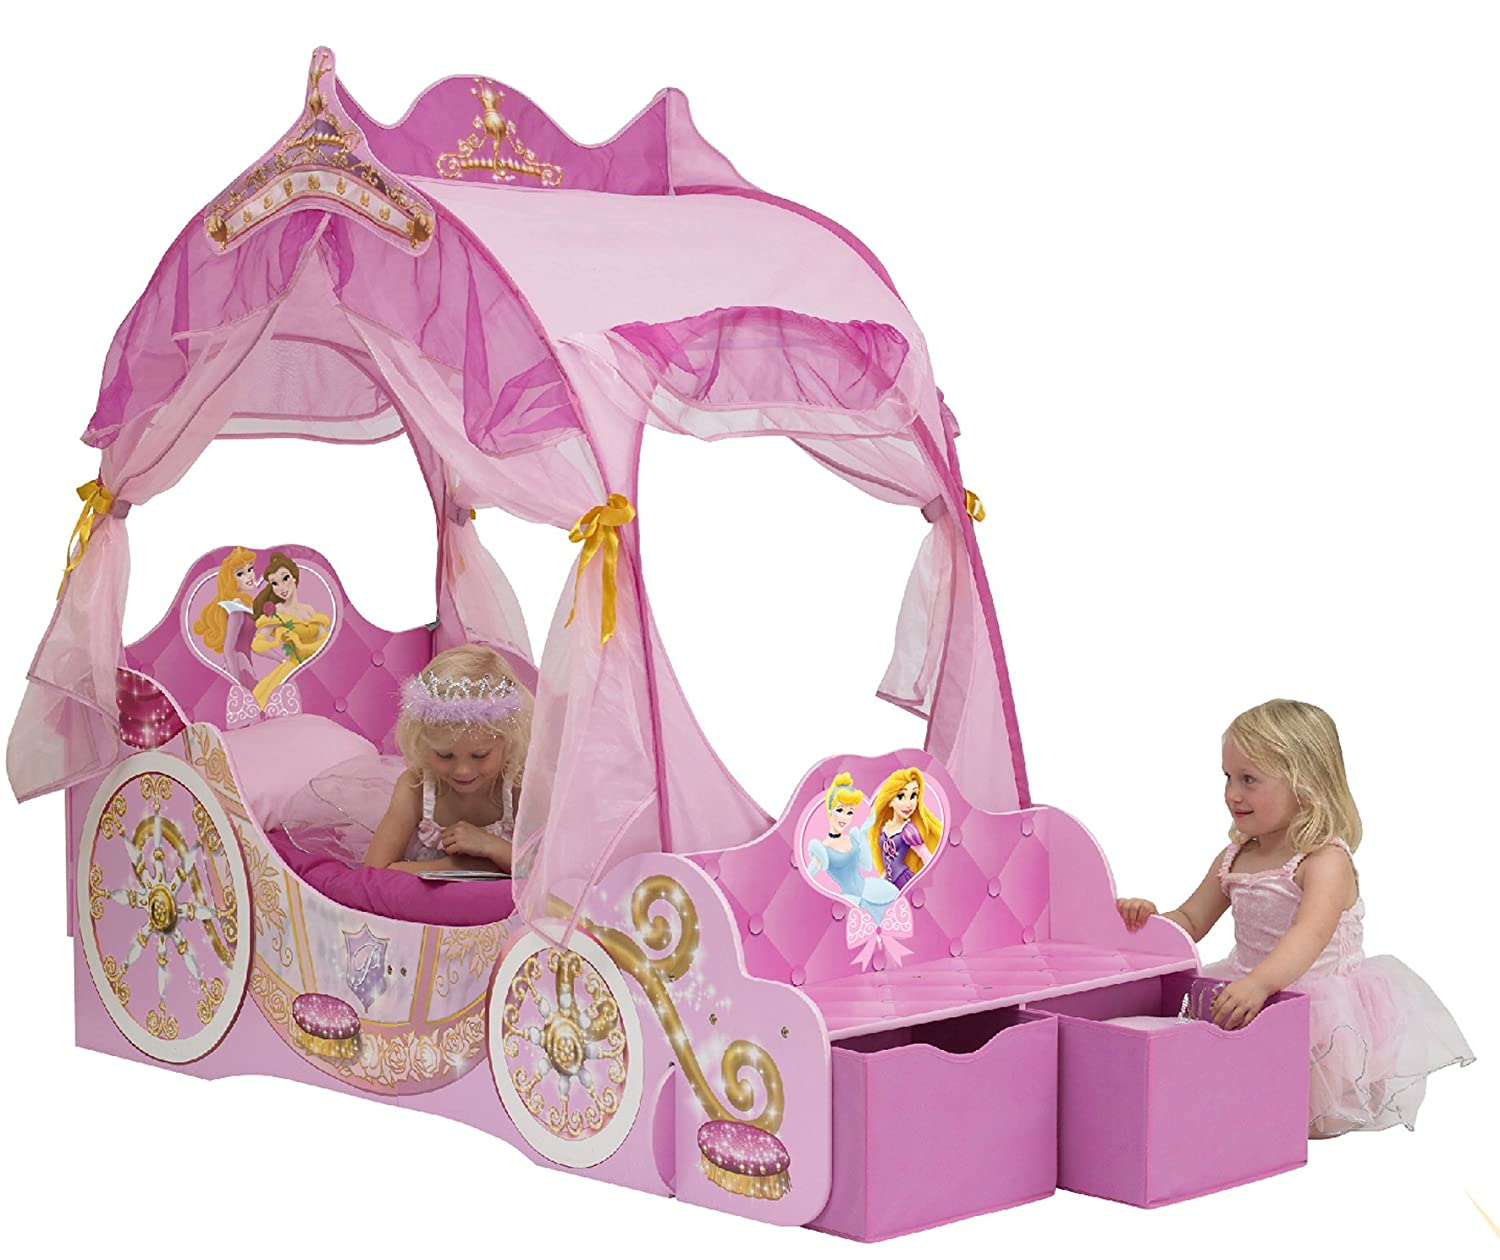 Disney Princess Toddler Carriage Bed With Storage Boxes